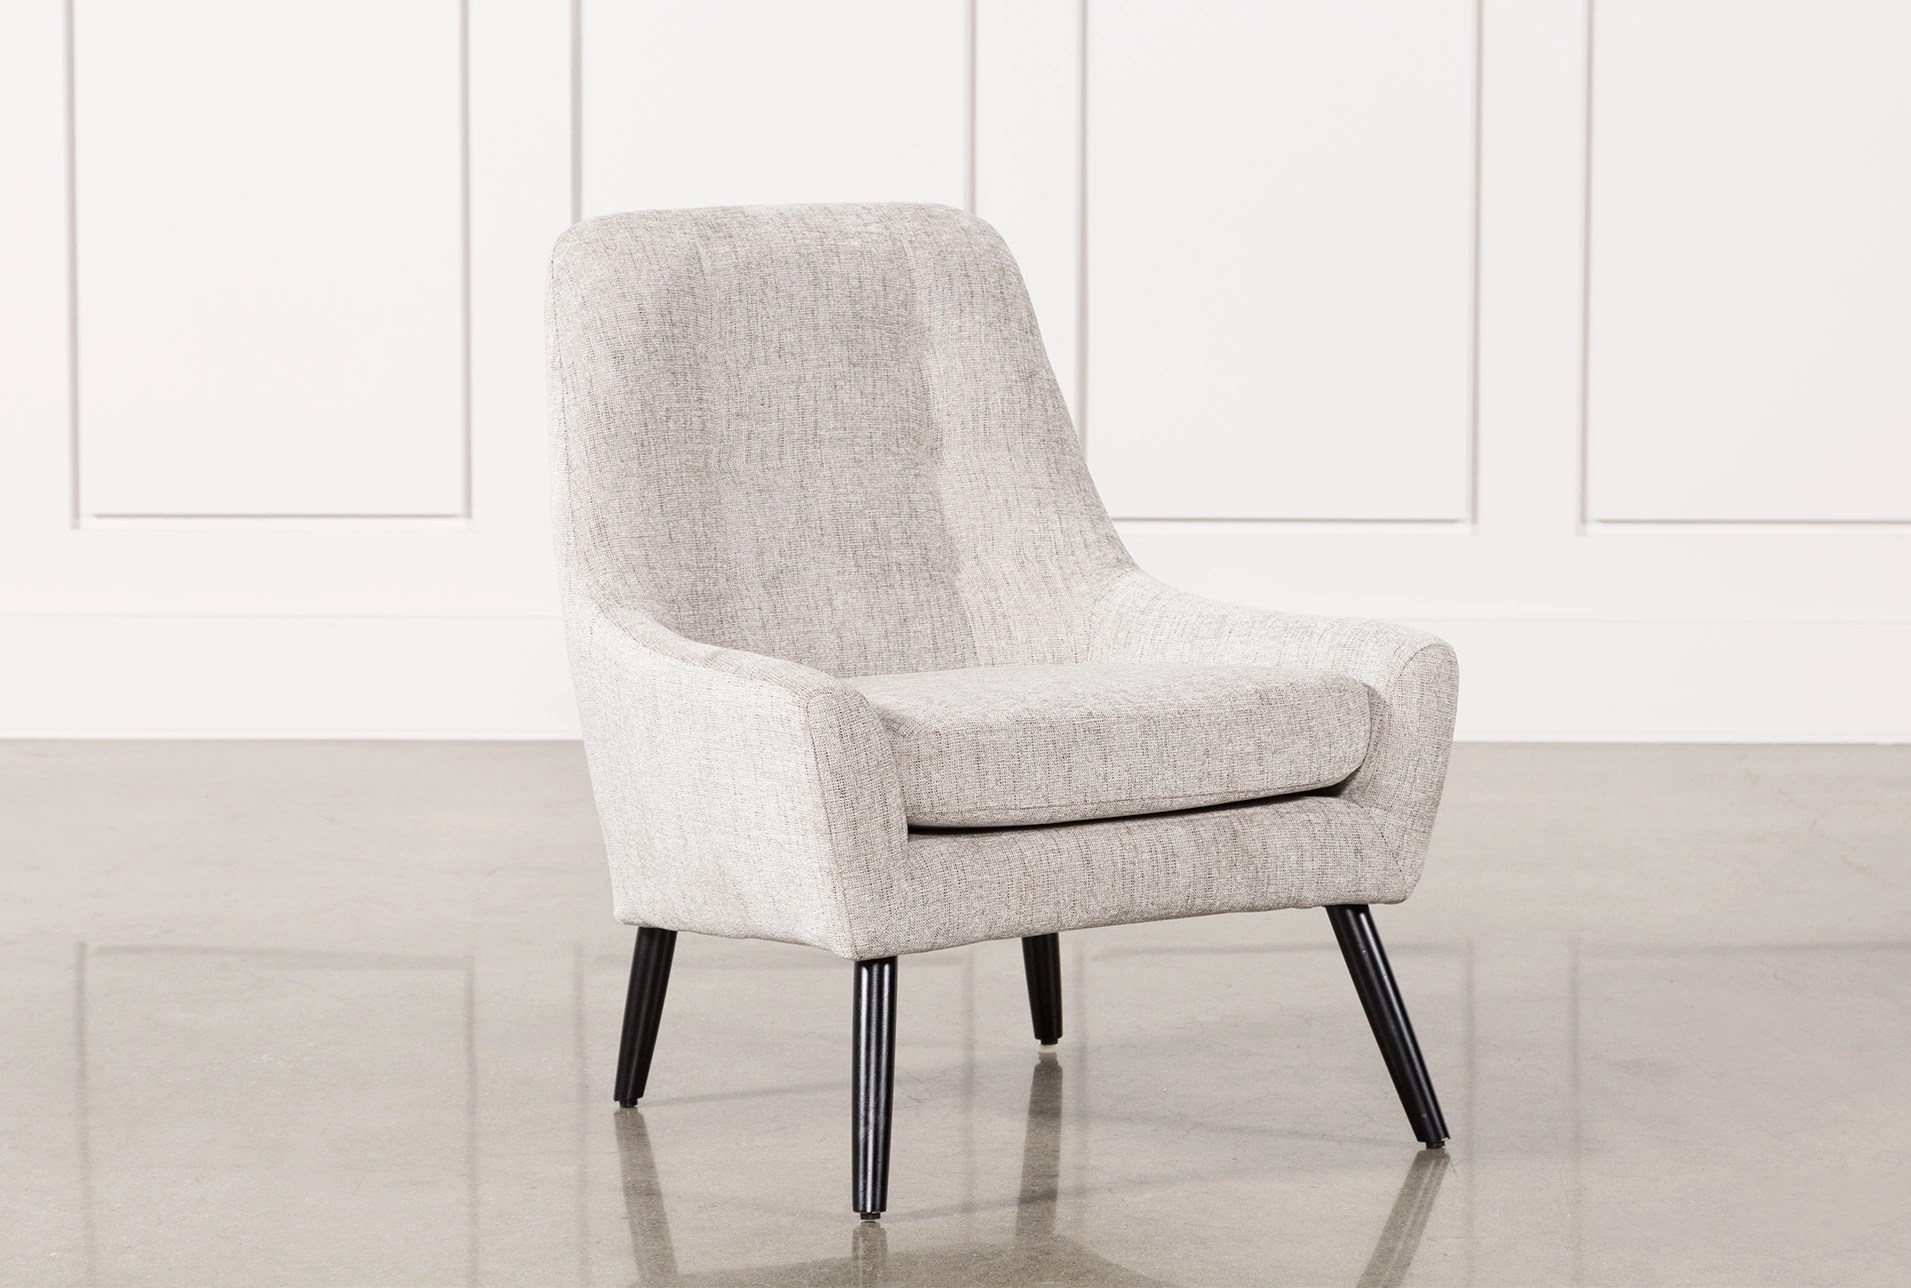 Mongolian Fur Chair Accent Chairs For Your Home And Office Living Spaces